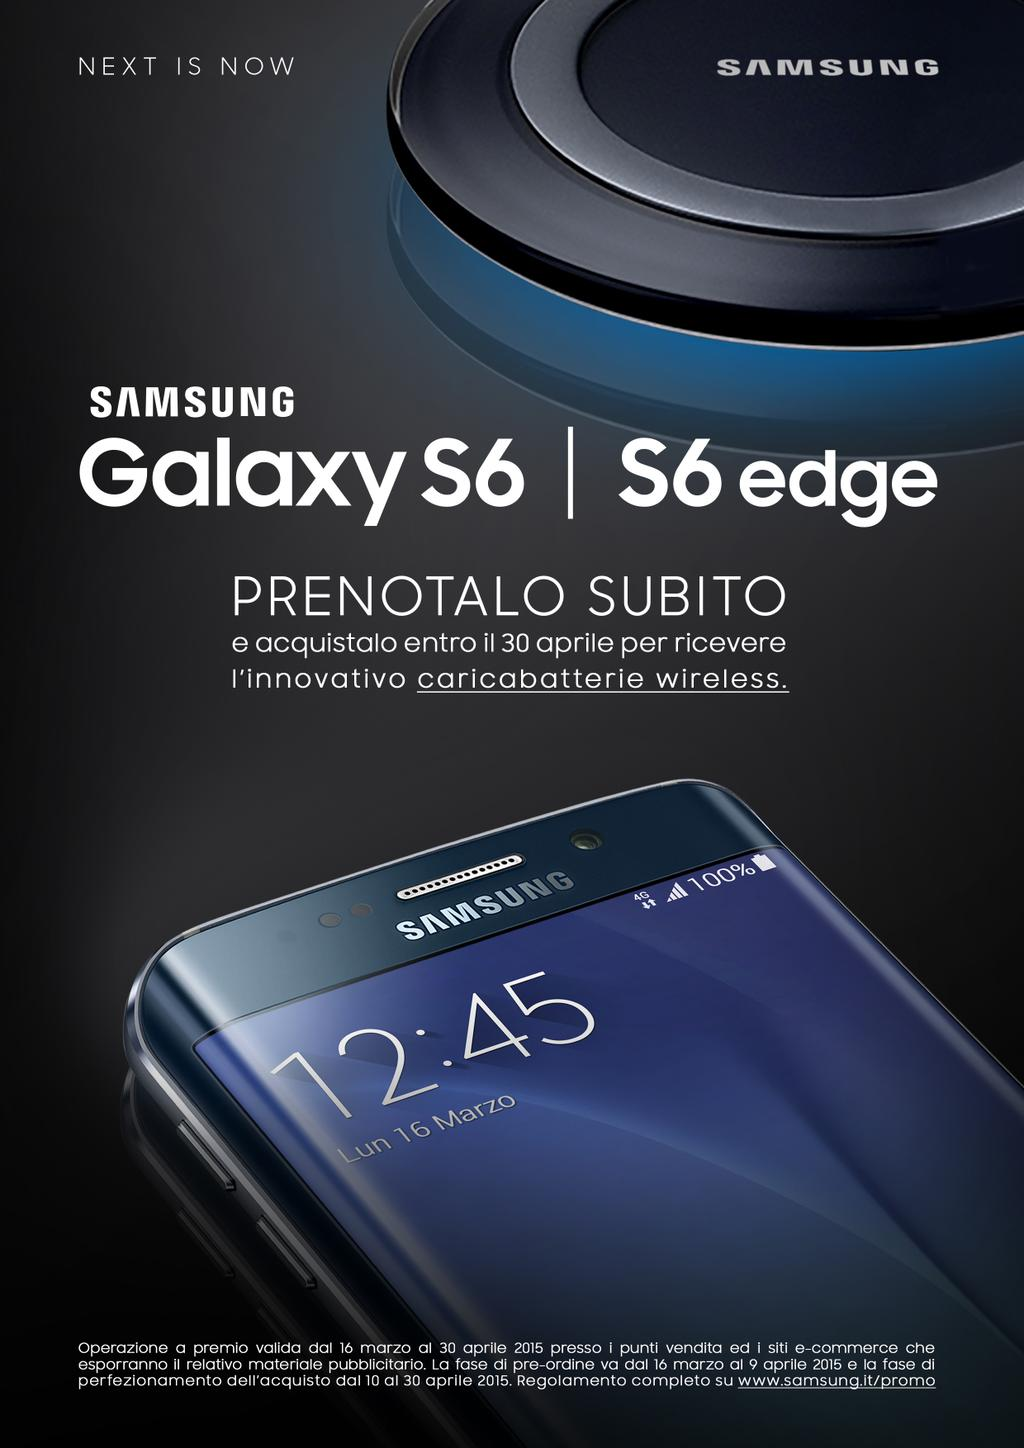 samsung galaxy s6, s6 edge, offical launch on march 16 in italy, price in italy